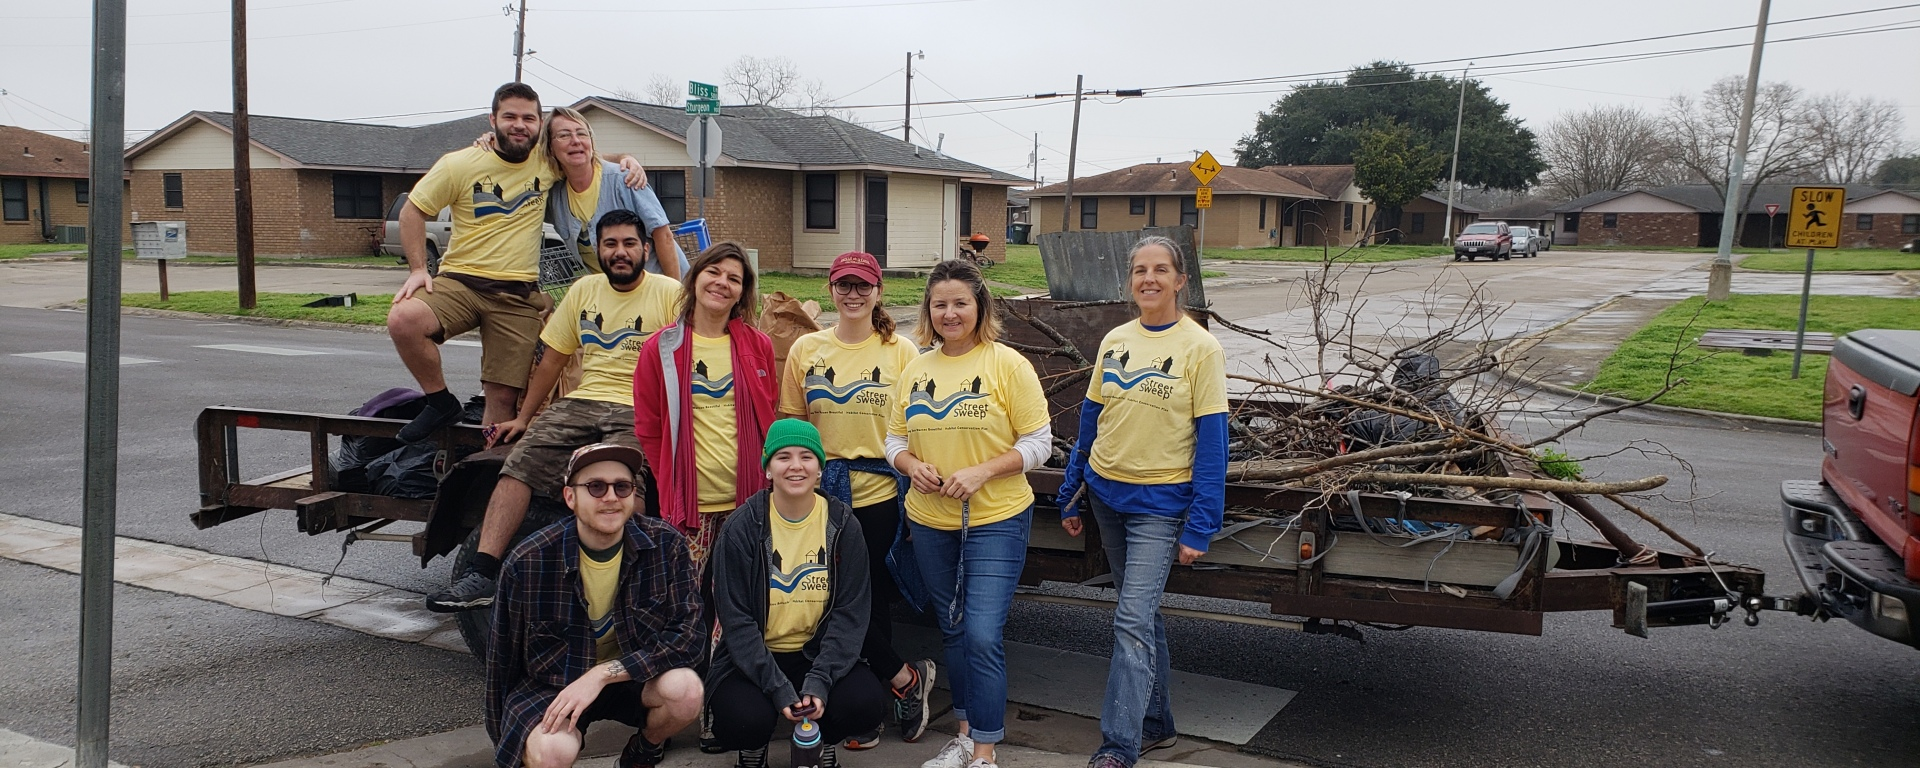 The volunteers are posing next to a pile of trash on a trailer.